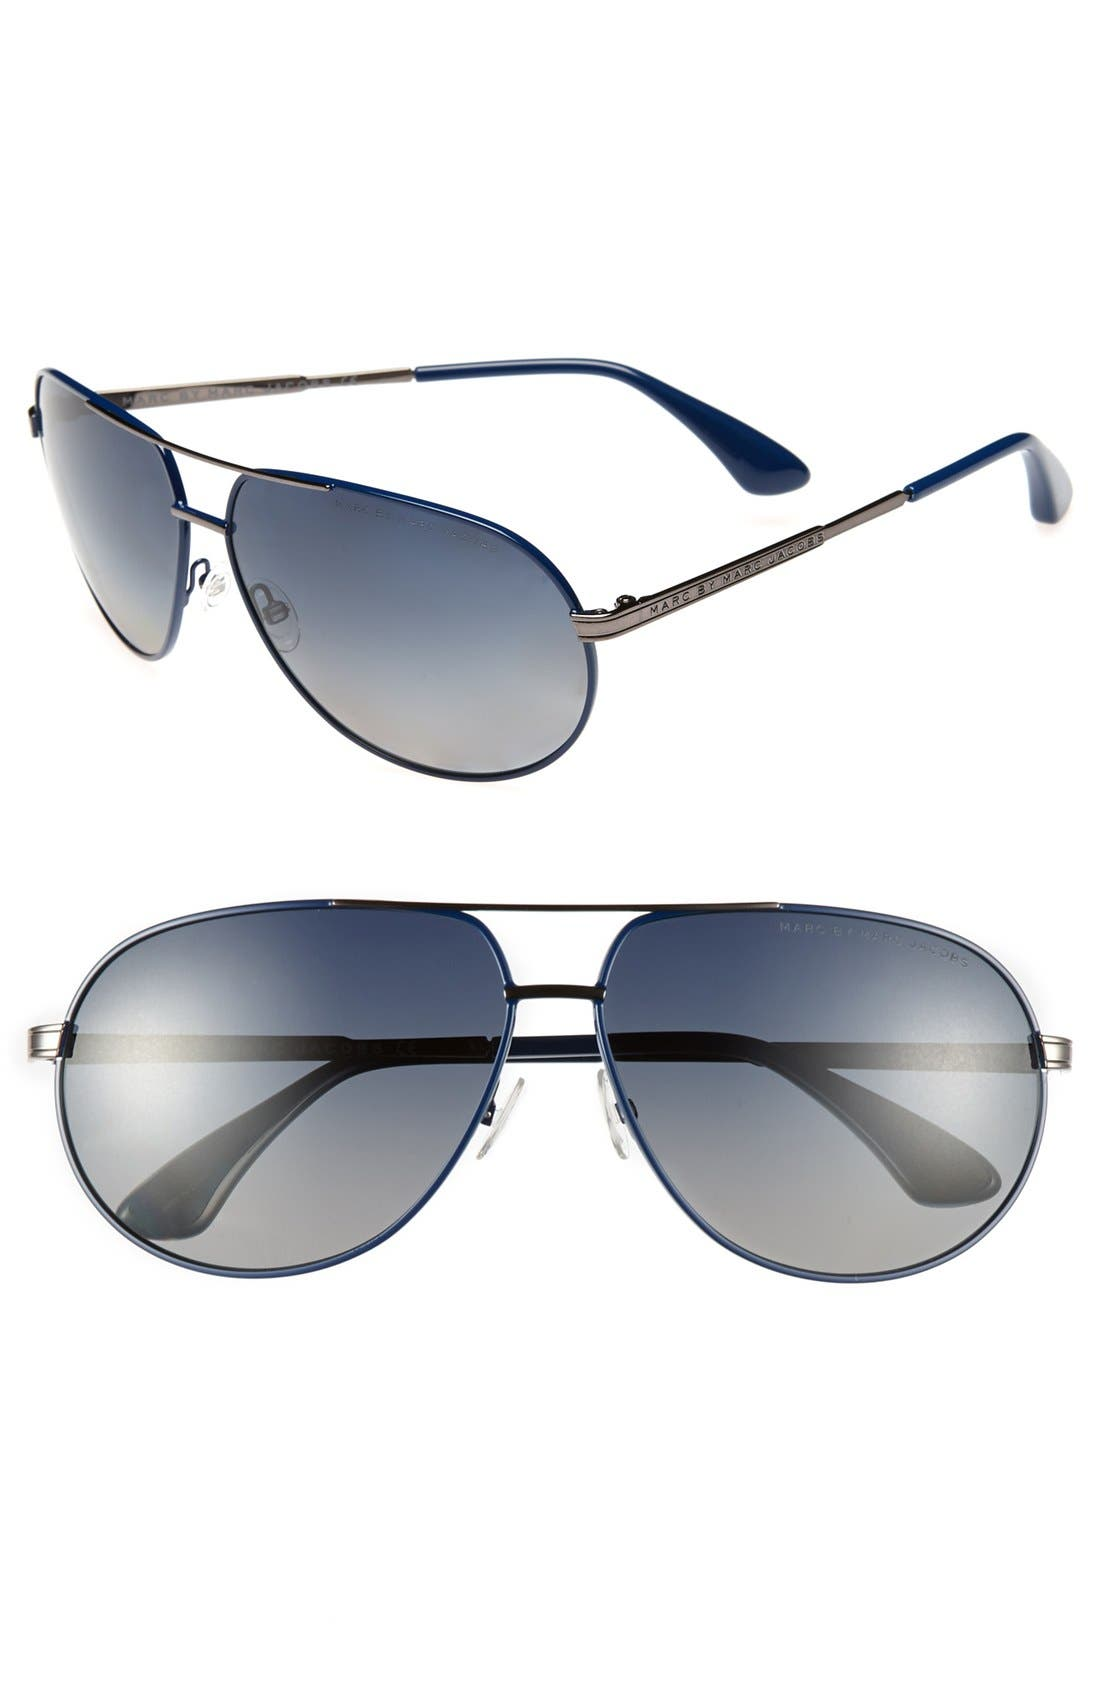 Alternate Image 1 Selected - MARC BY MARC JACOBS 63mm Polarized Aviator Sunglasses